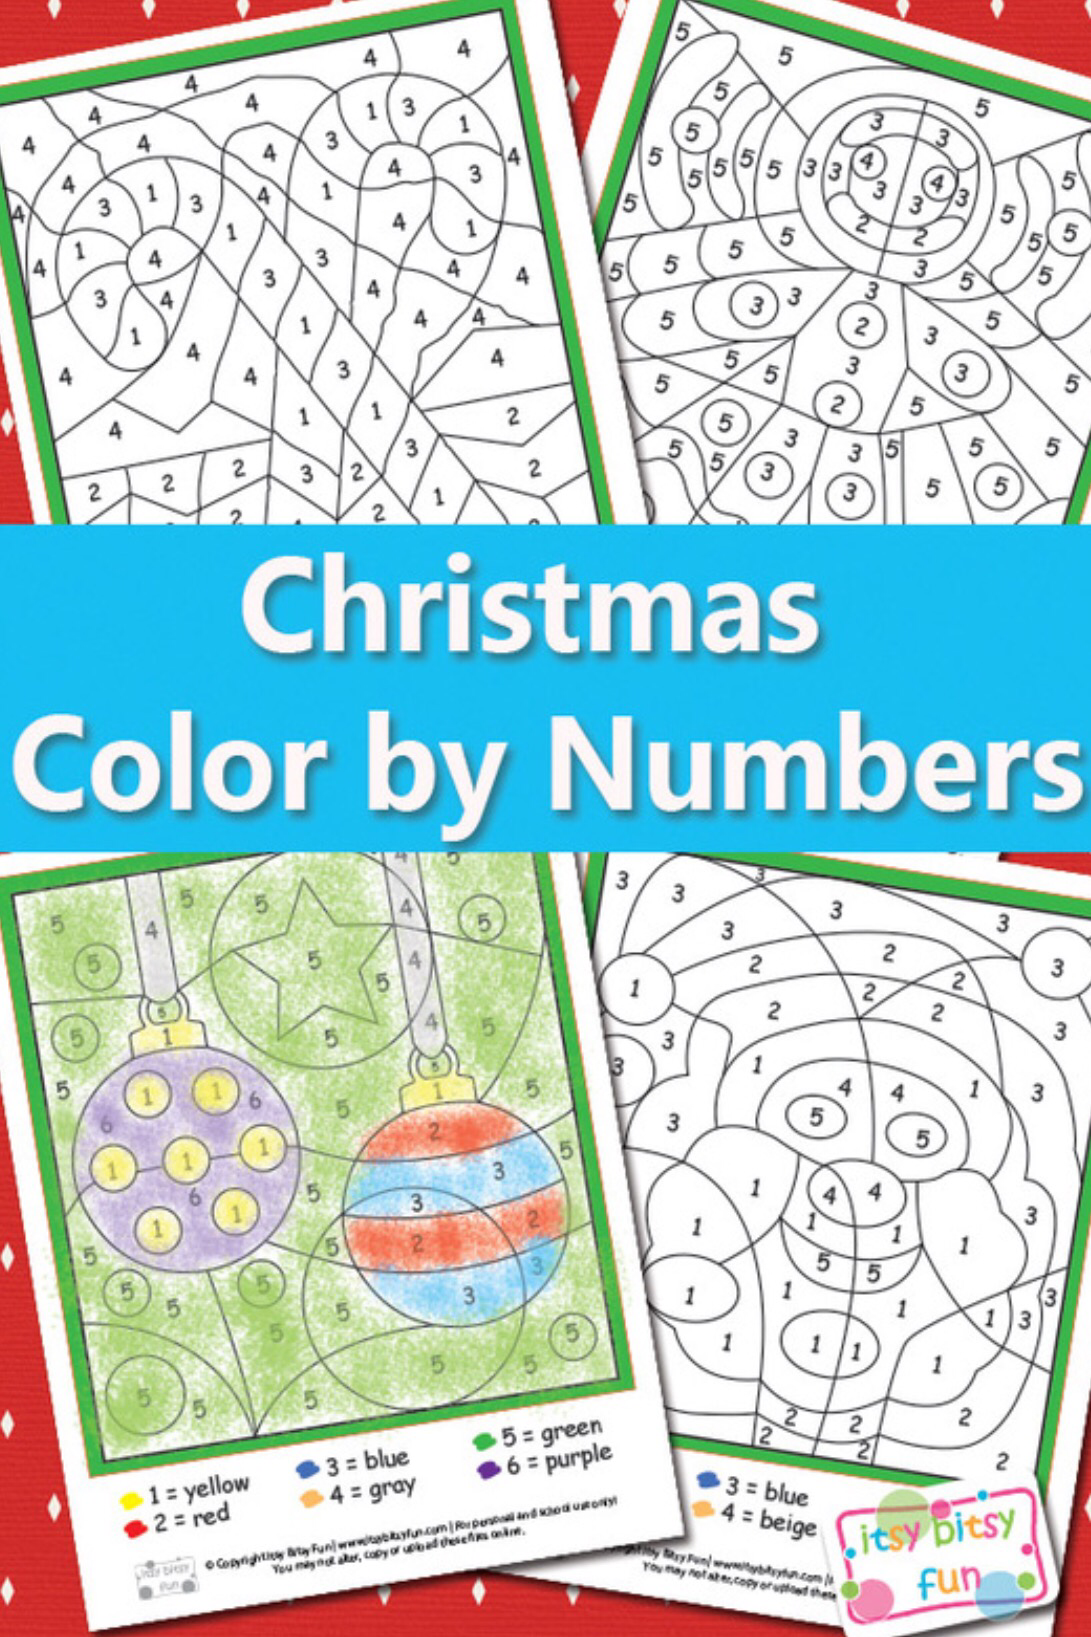 Color By Numbers Worksheet Round Up | The Bean & The Belle